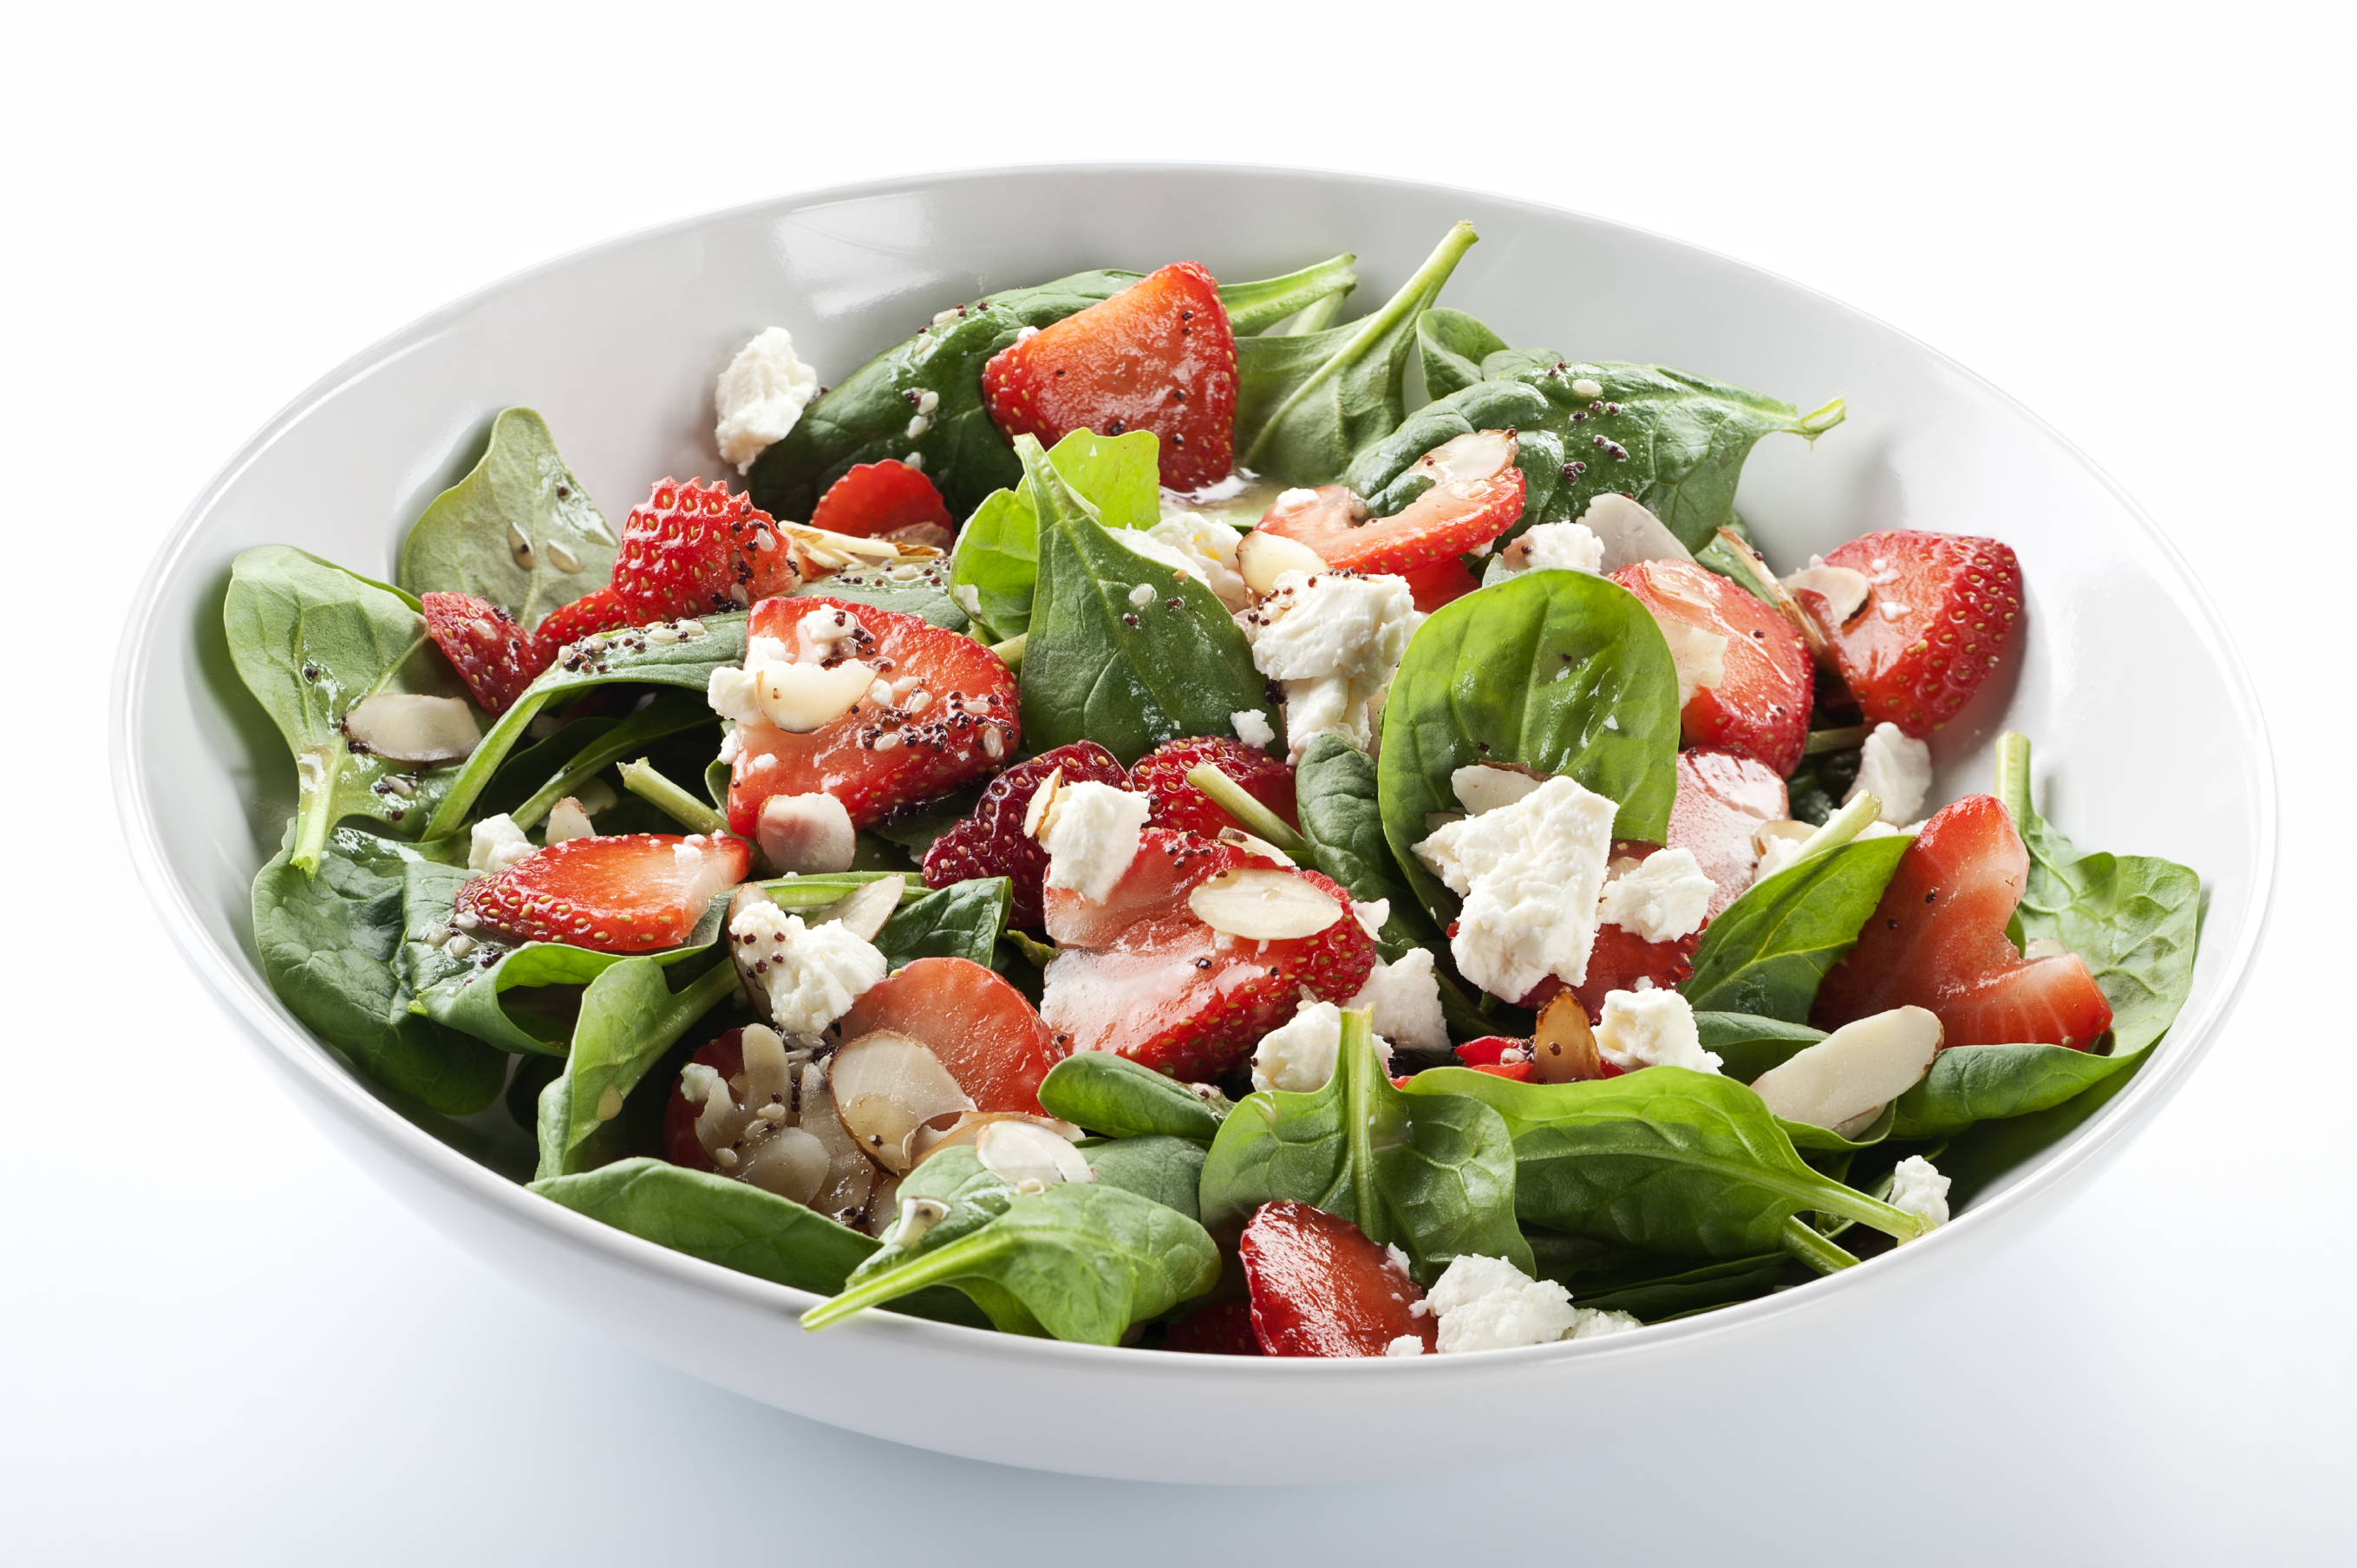 Spinach Strawberry Salad with Goat Cheese